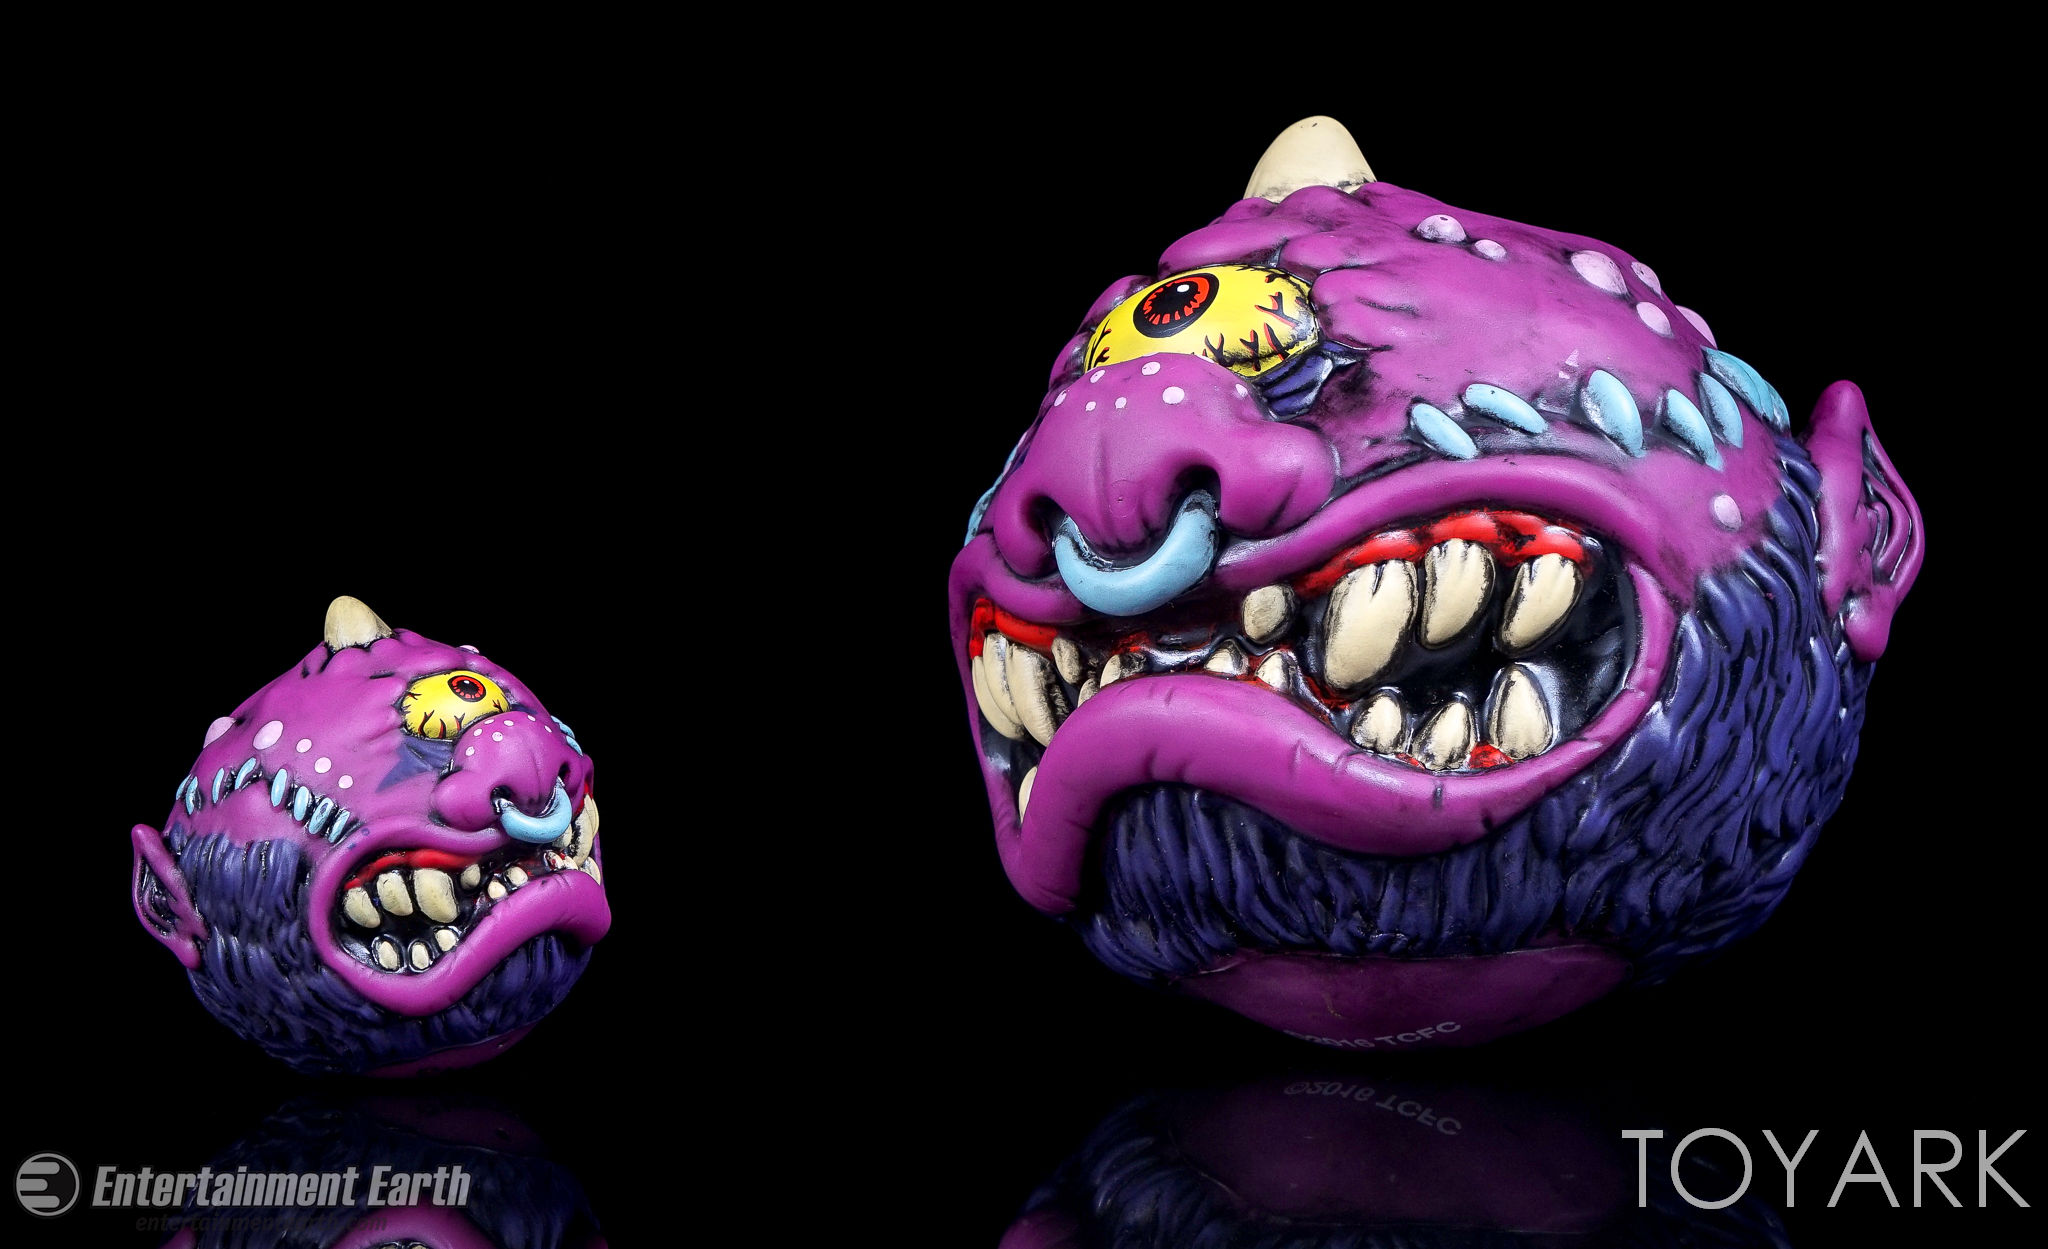 http://news.toyark.com/wp-content/uploads/sites/4/2017/02/Kidrobot-Madballs-Blind-Box-064.jpg